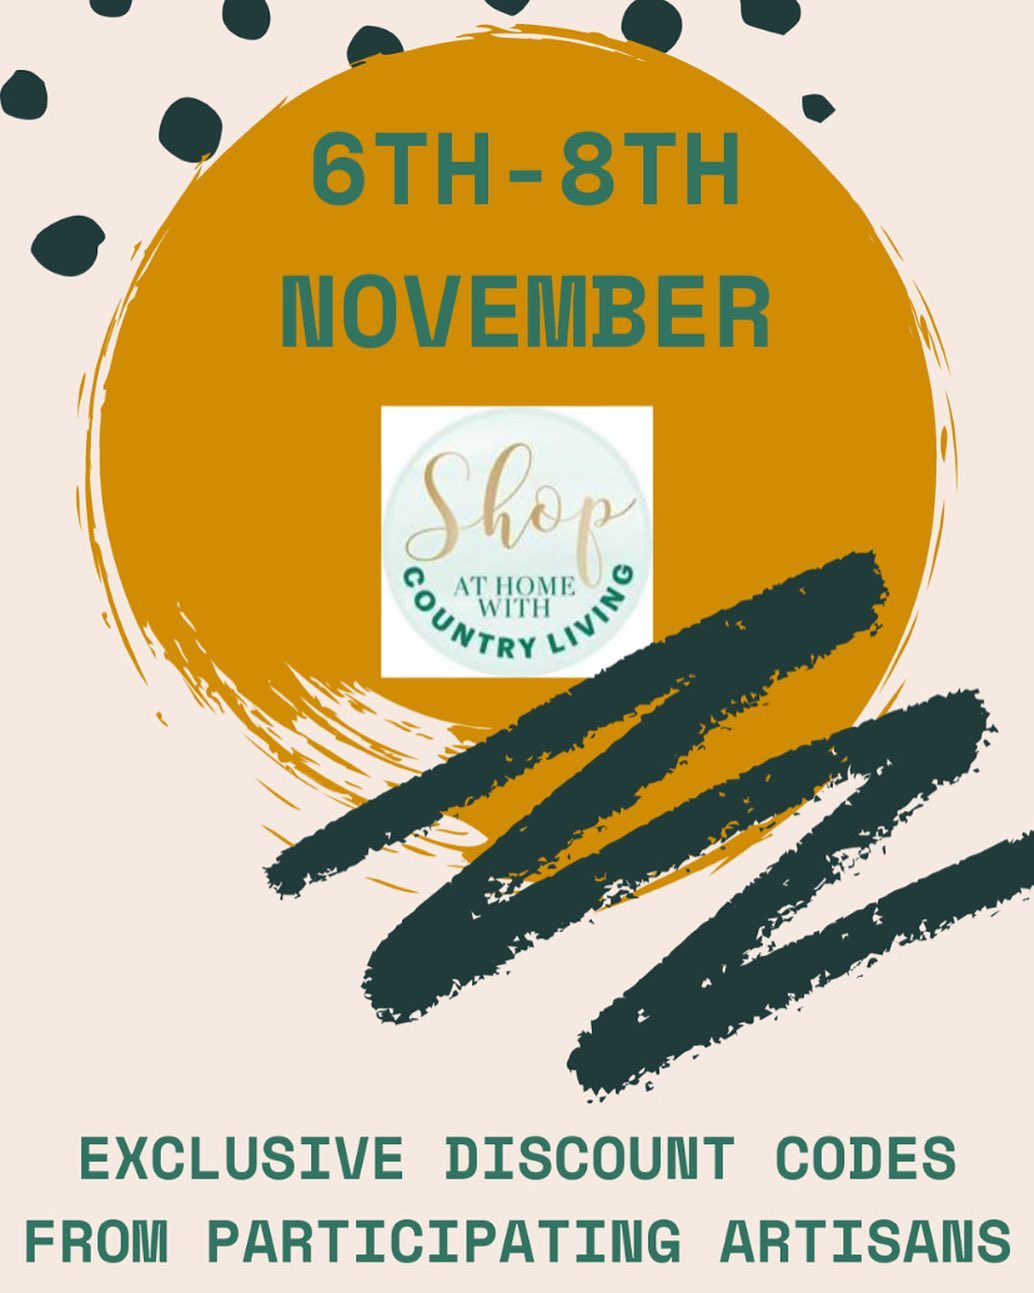 Looking forward to our first event with @clartisans as part of the 'shop at home with Country Living' Christmas fair! Head over to their page and find out how you can sign up for the event and get exclusive discounts from hundreds of independent businesses. The fair is running from Midday on Friday the 6th of November to midnight on the 8th. ...@countrylivinguk #countrylivingchristmas #shopathomewithcountryliving #offers #discounts #christmasshopping